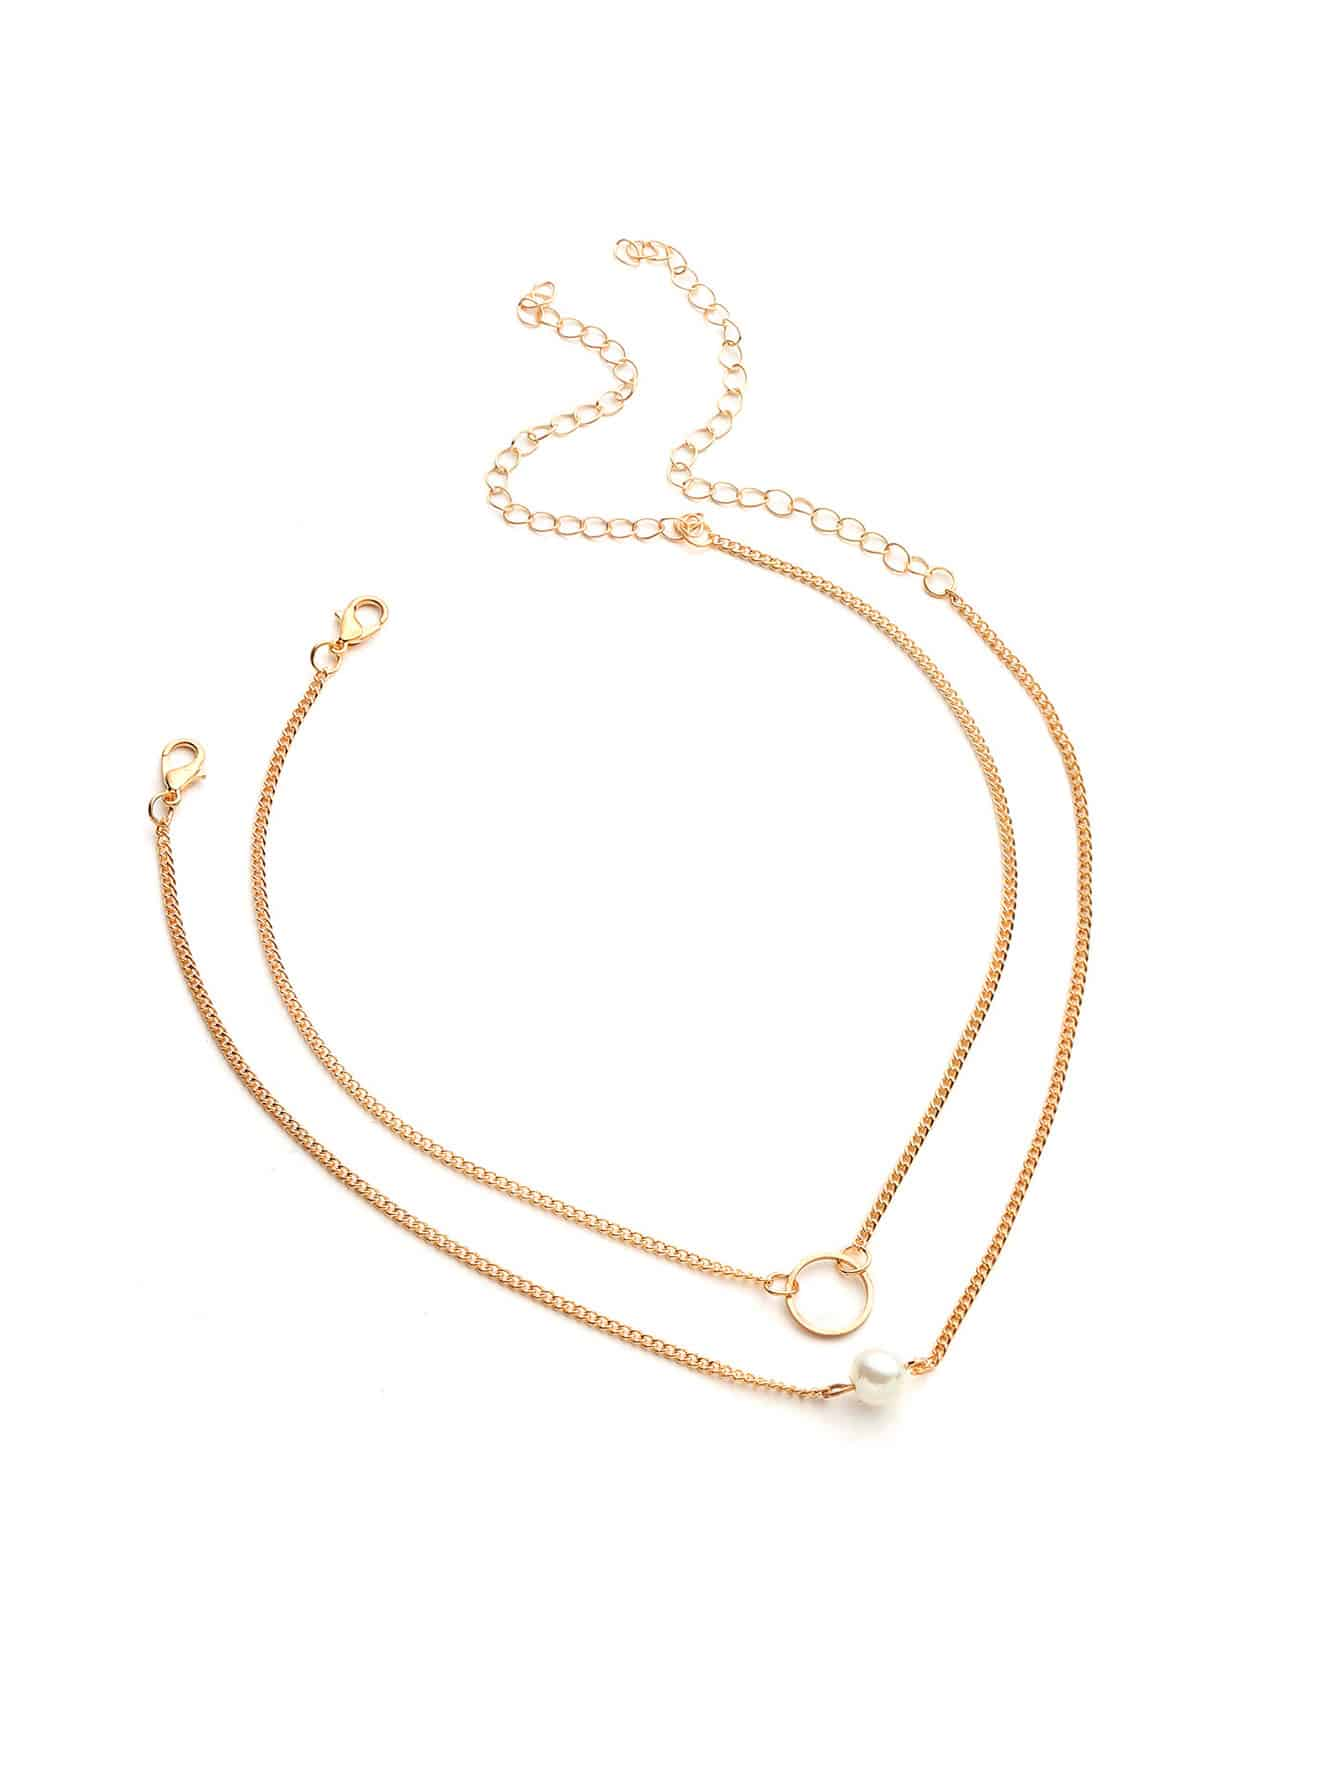 Golden Ring Design With Faux Pearl 2pcs Chain Choker Set